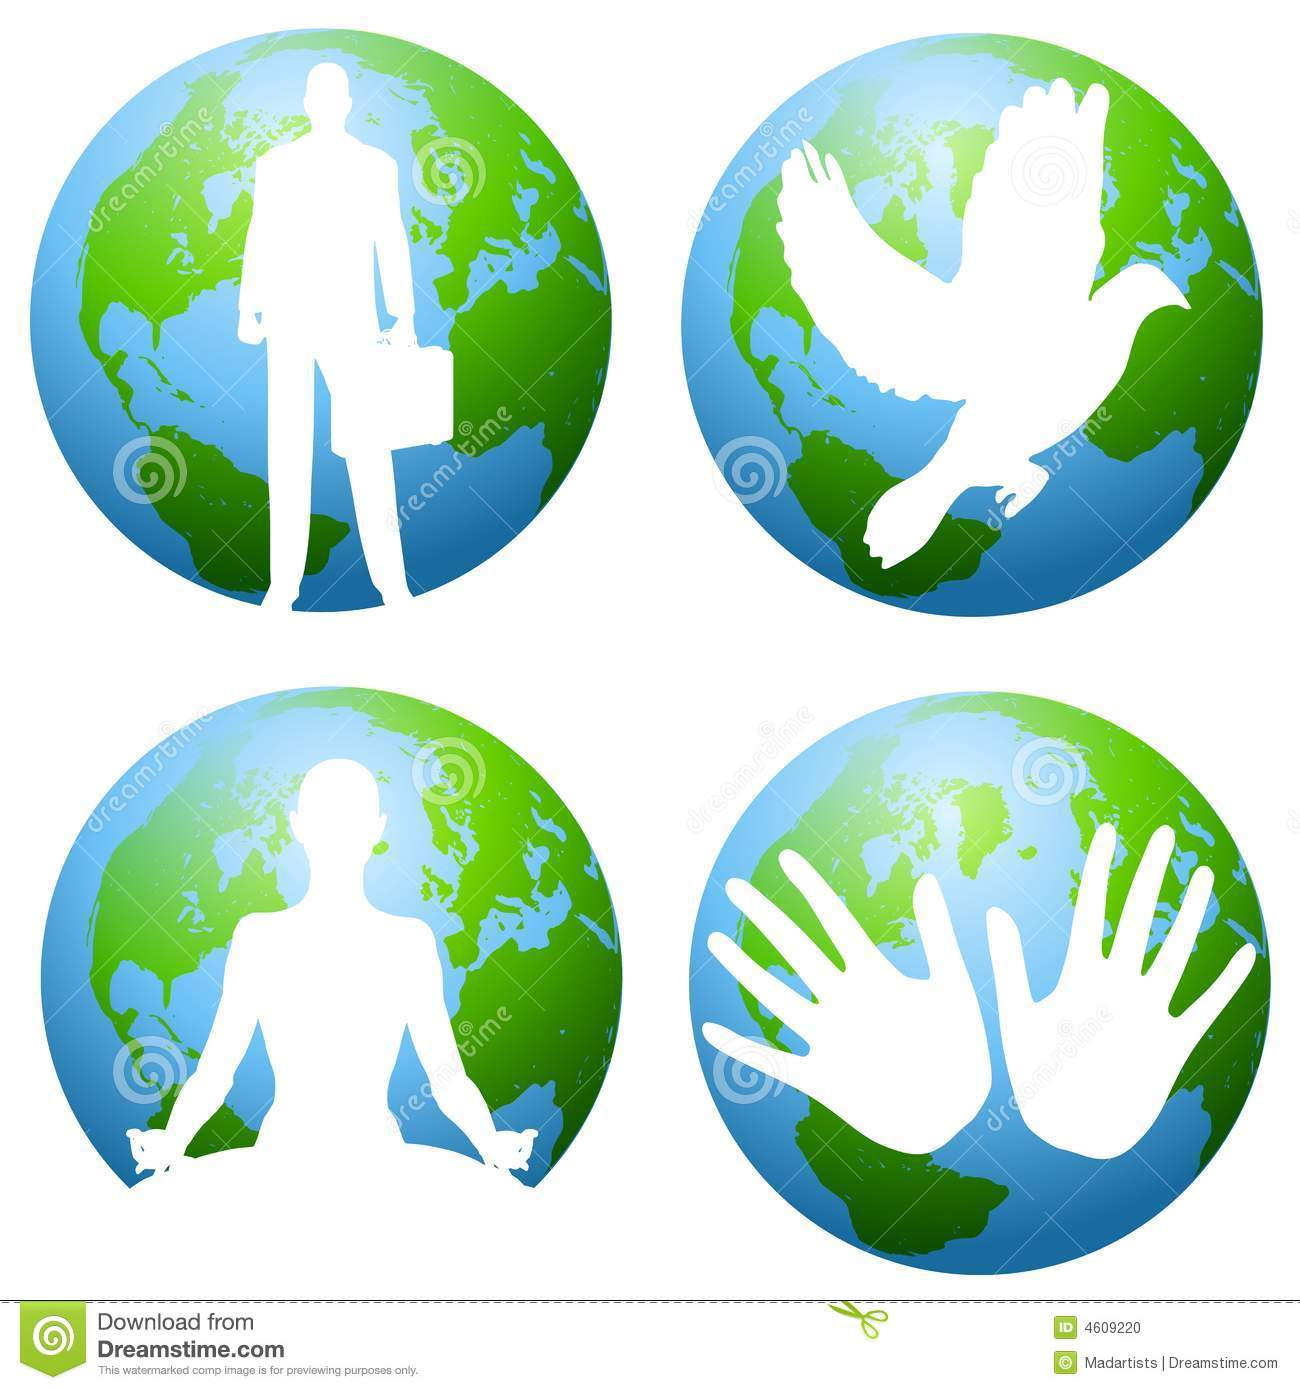 Clipart Earth Science Earth Clipart #M5Nb5L - Clipart Kid